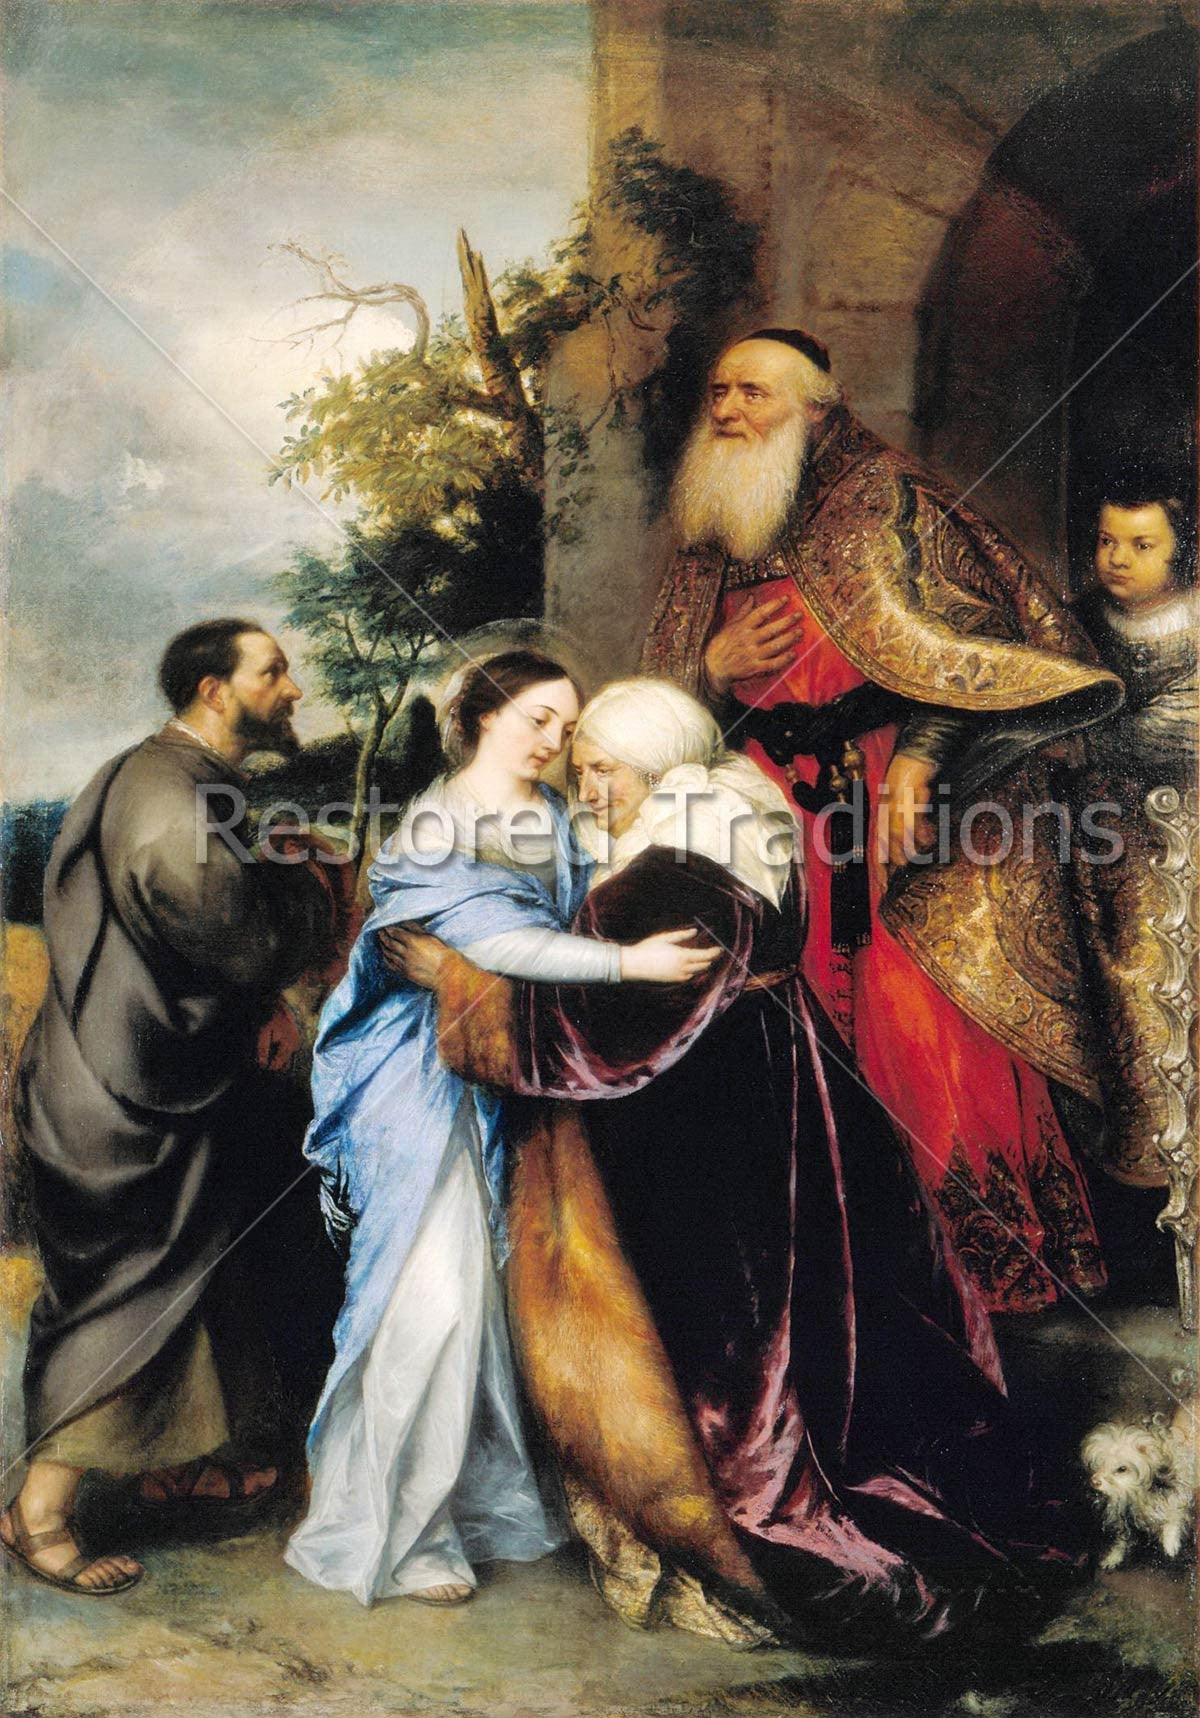 High Res Image Of Our Lady Embracing St Elizabeth By Artist J Lievens